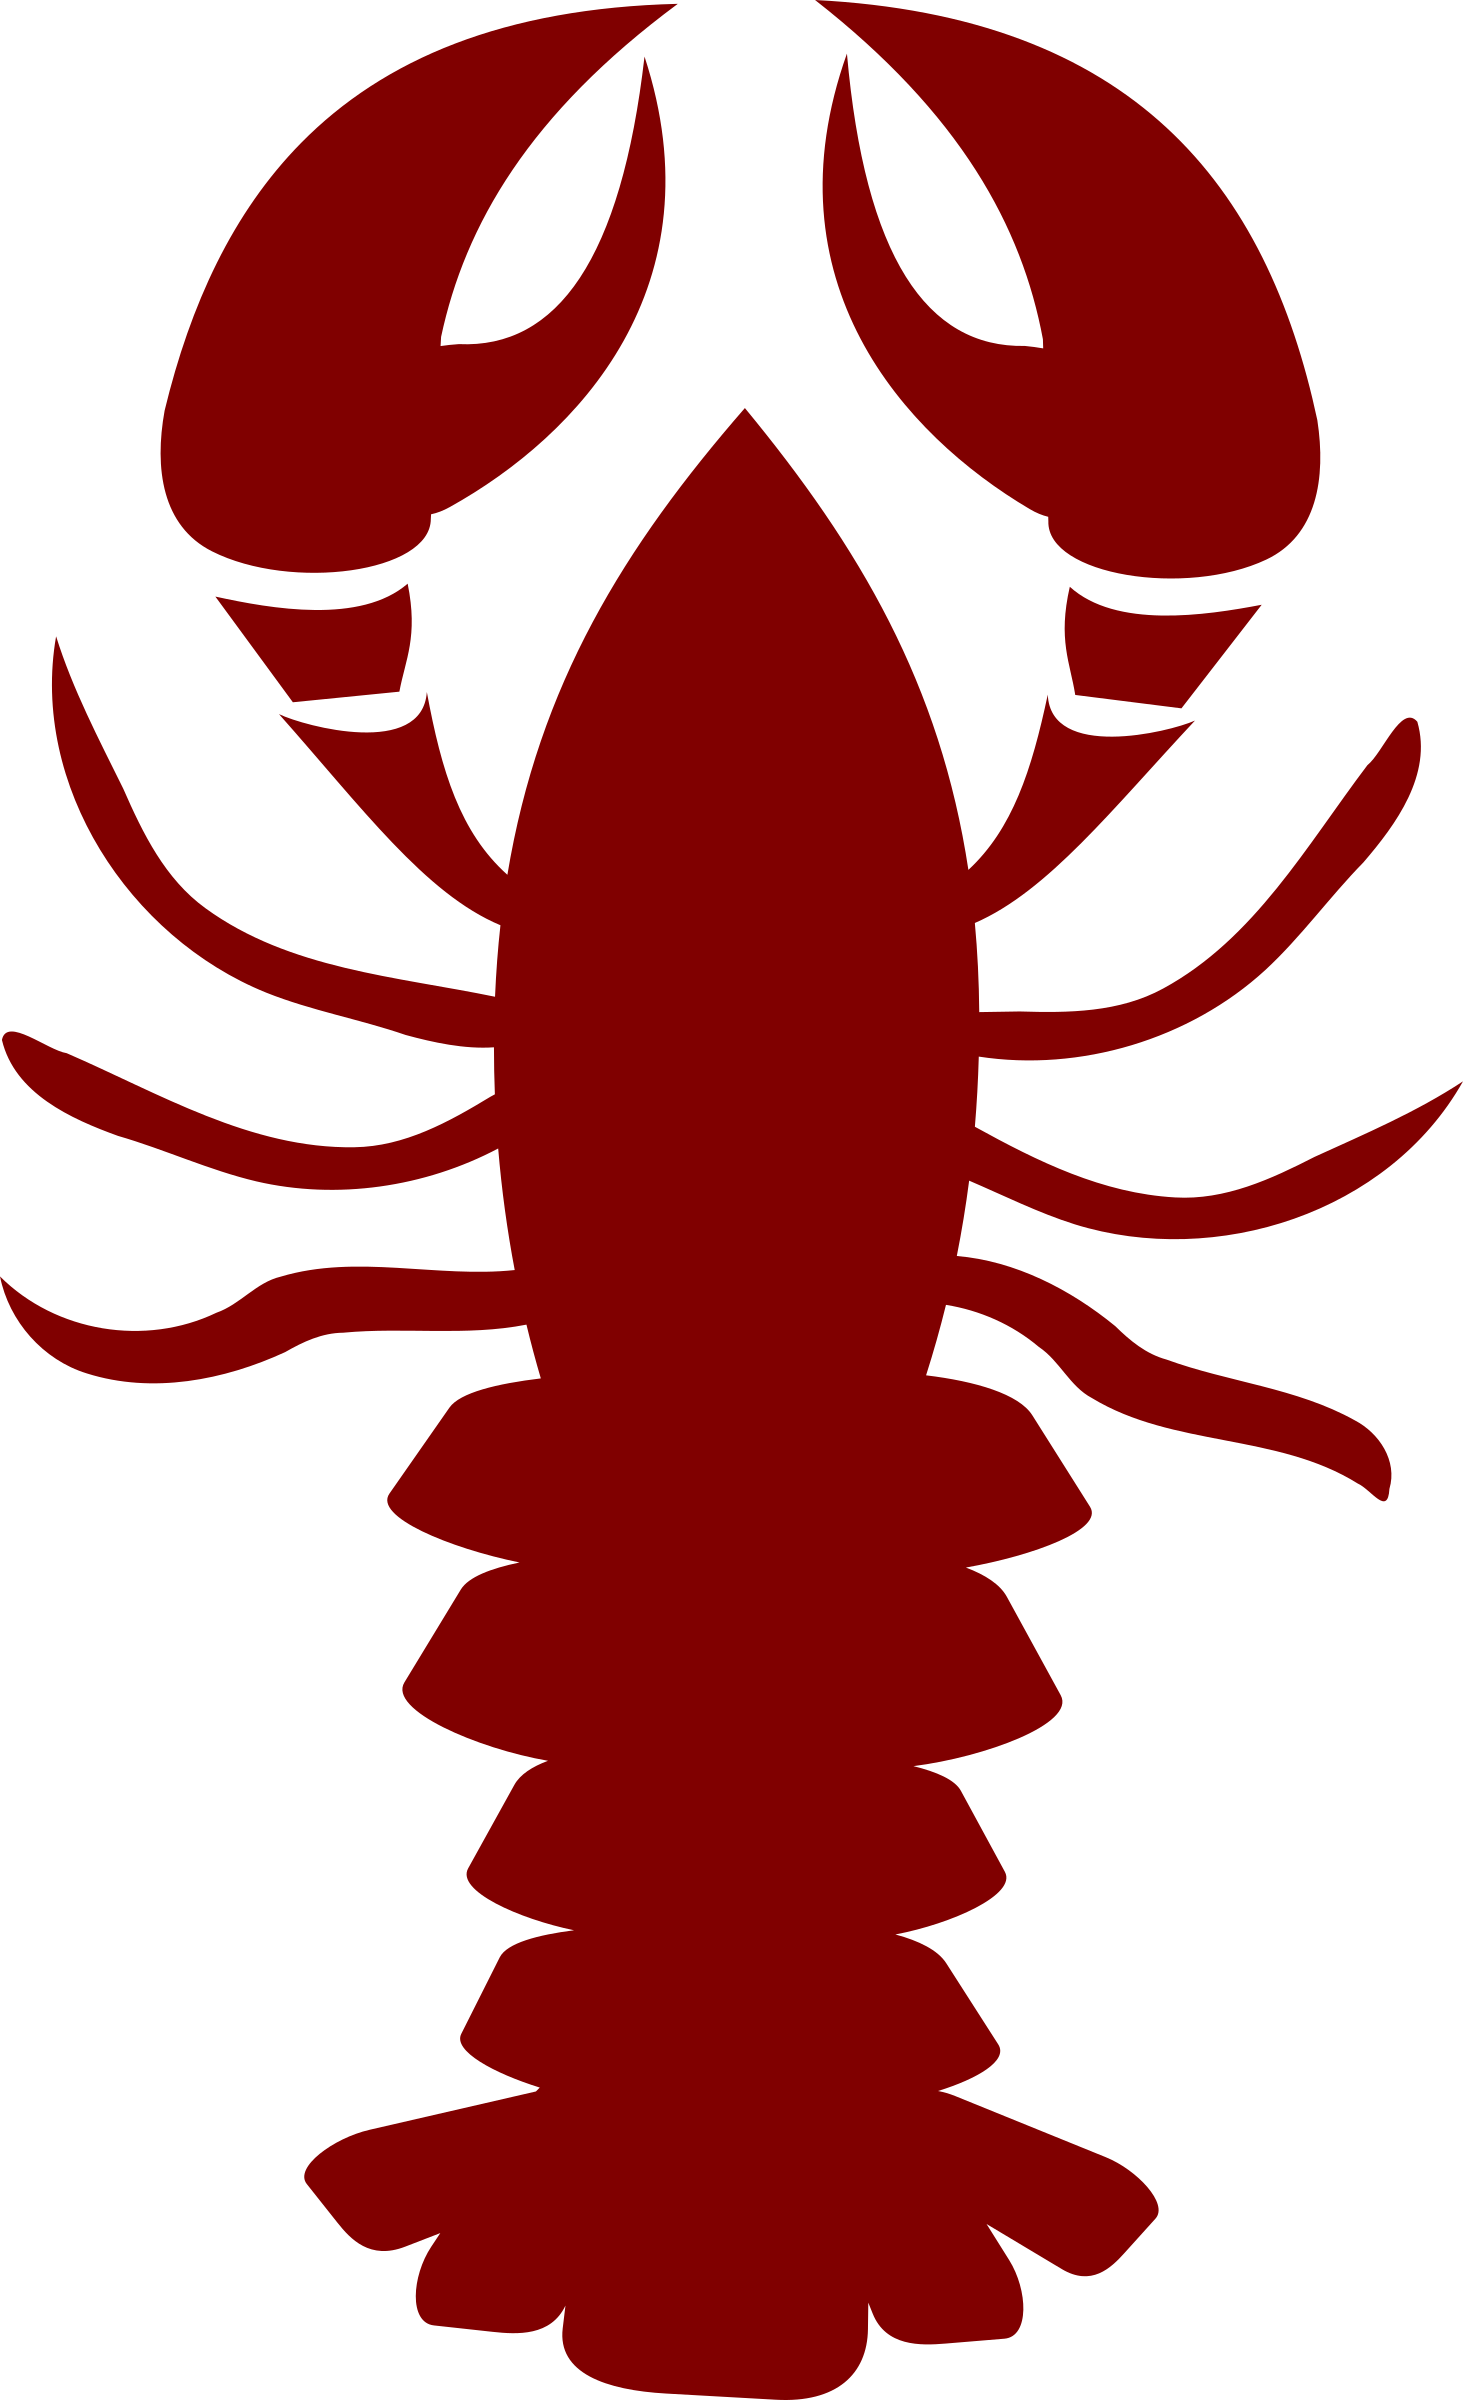 Lobster clipart images free.